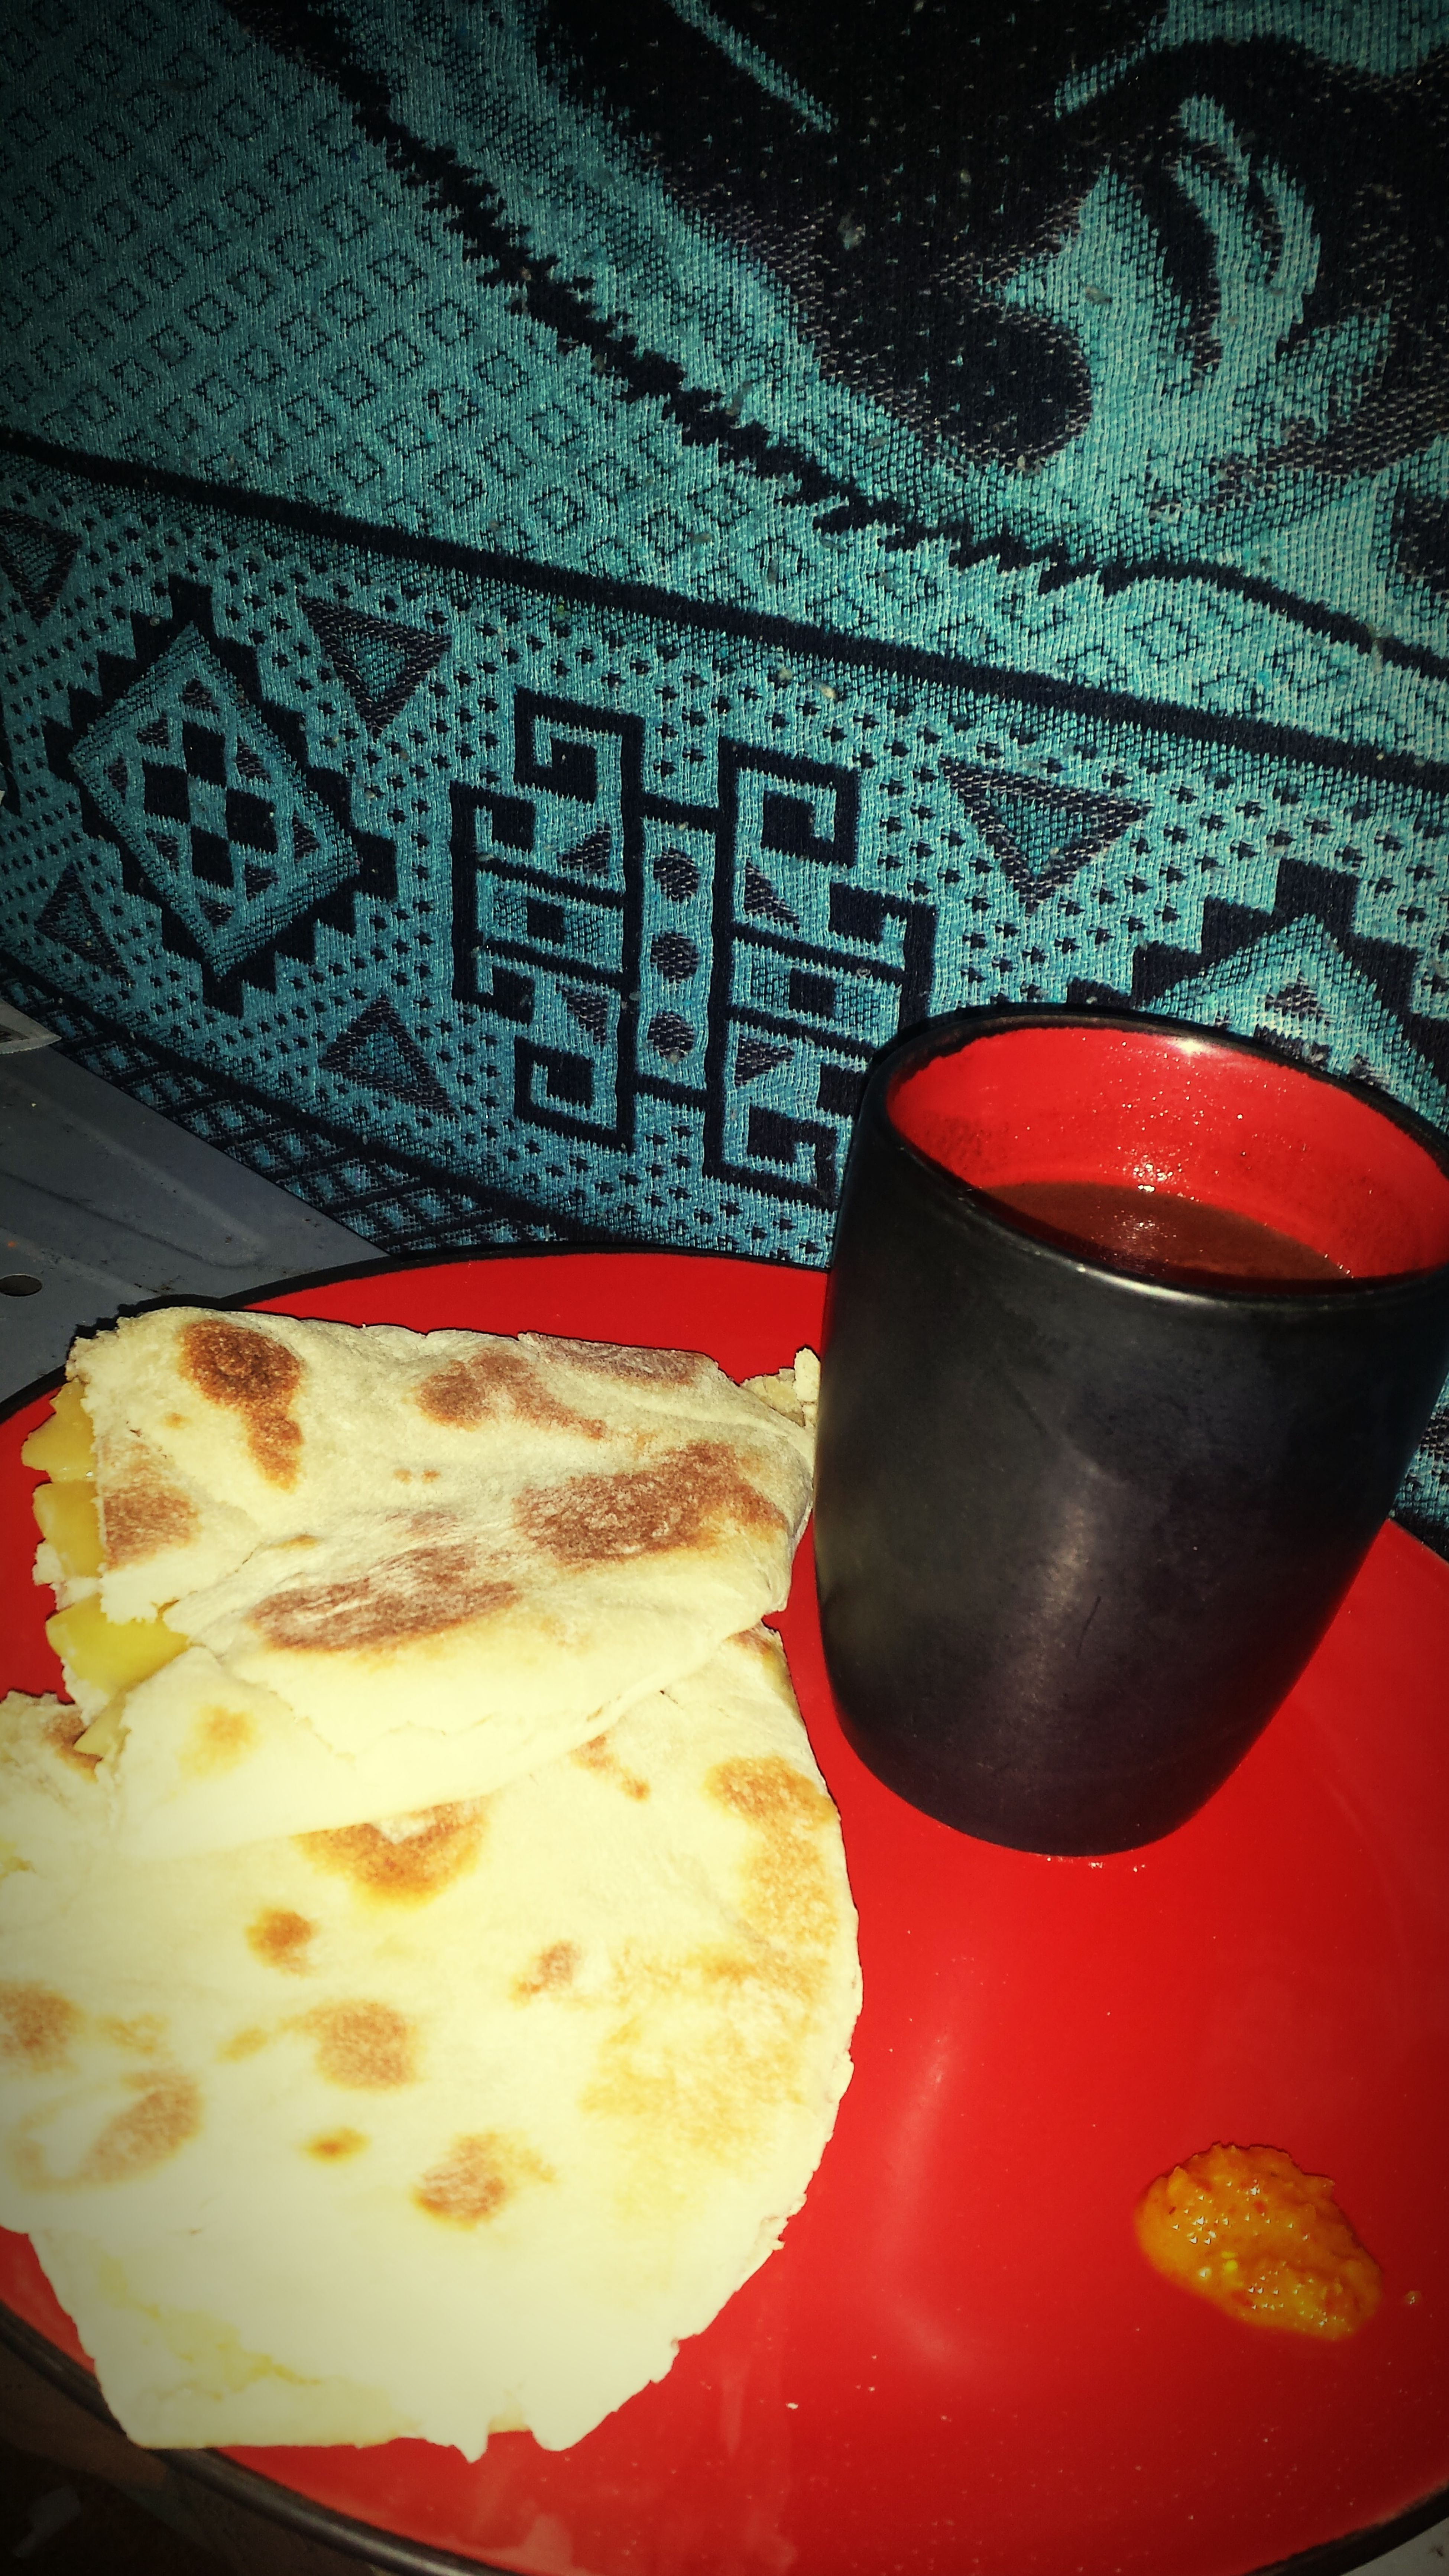 Throwback to childhood ♡ Pot Bake Cheese Cocoa Tea My View Yummy♡ Food Porn In My Mouth  Hungry Trinidad And Tobago Cooking